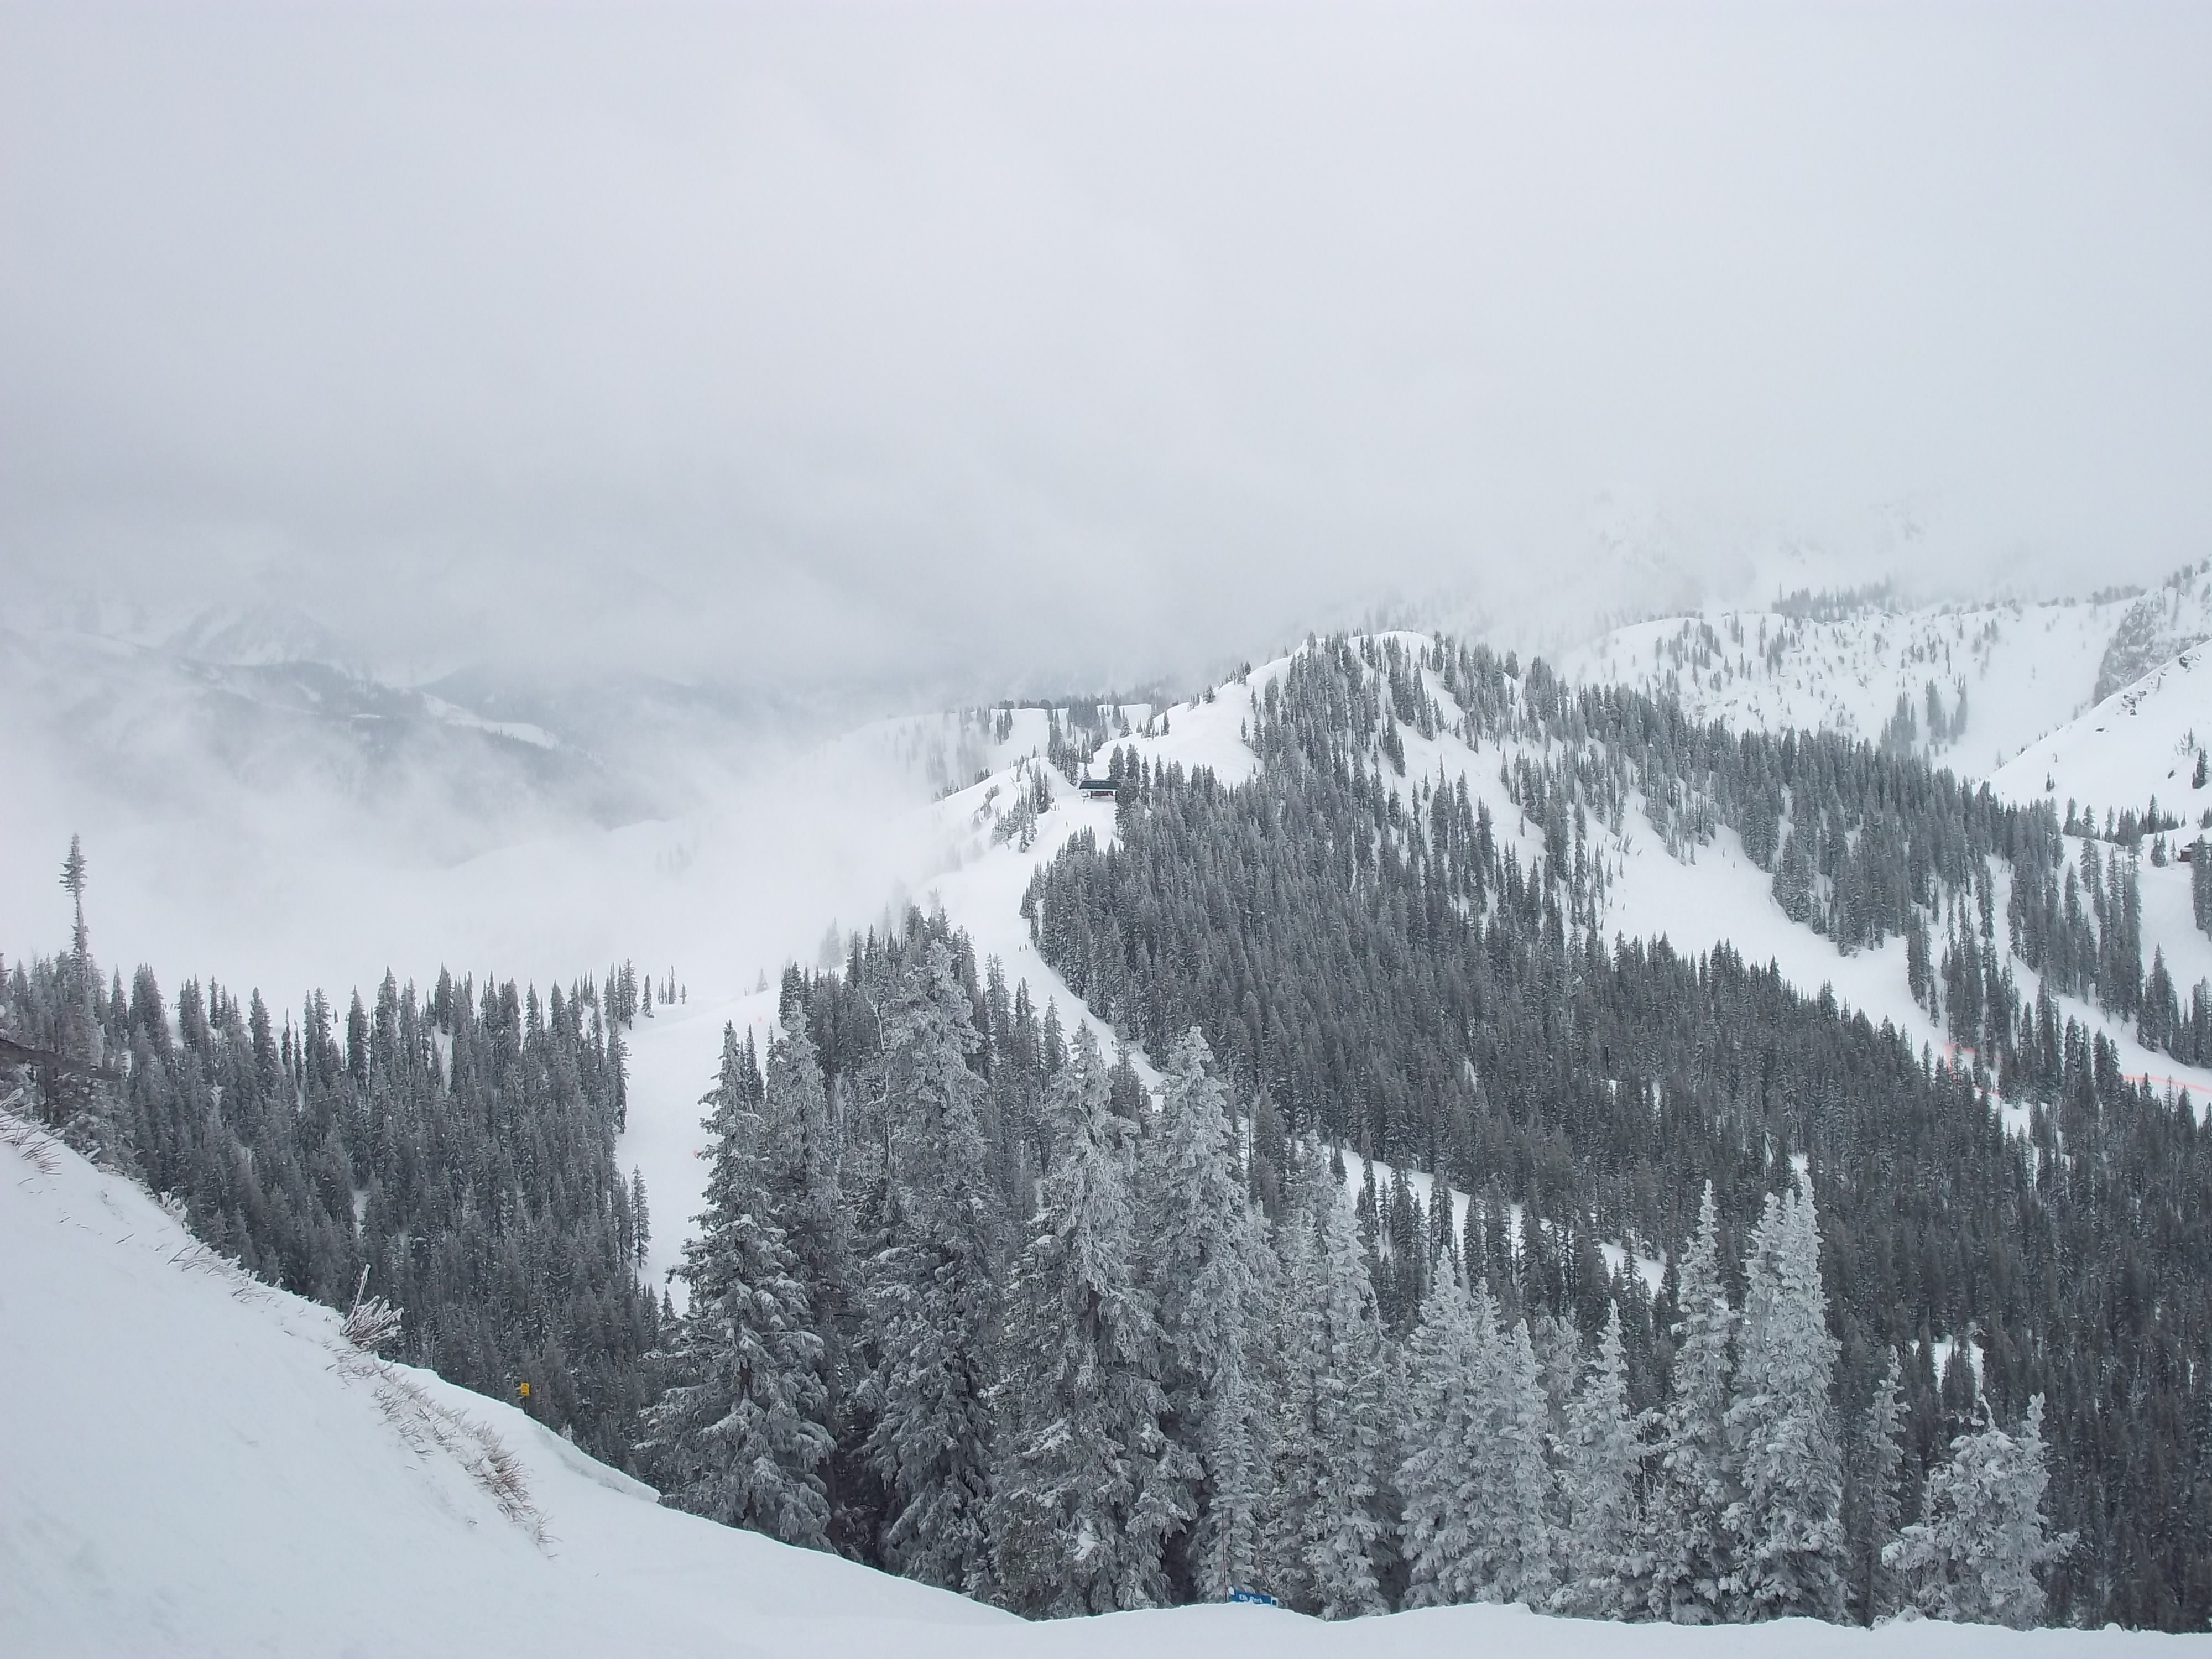 General 4000x3000 snow nature mountains winter